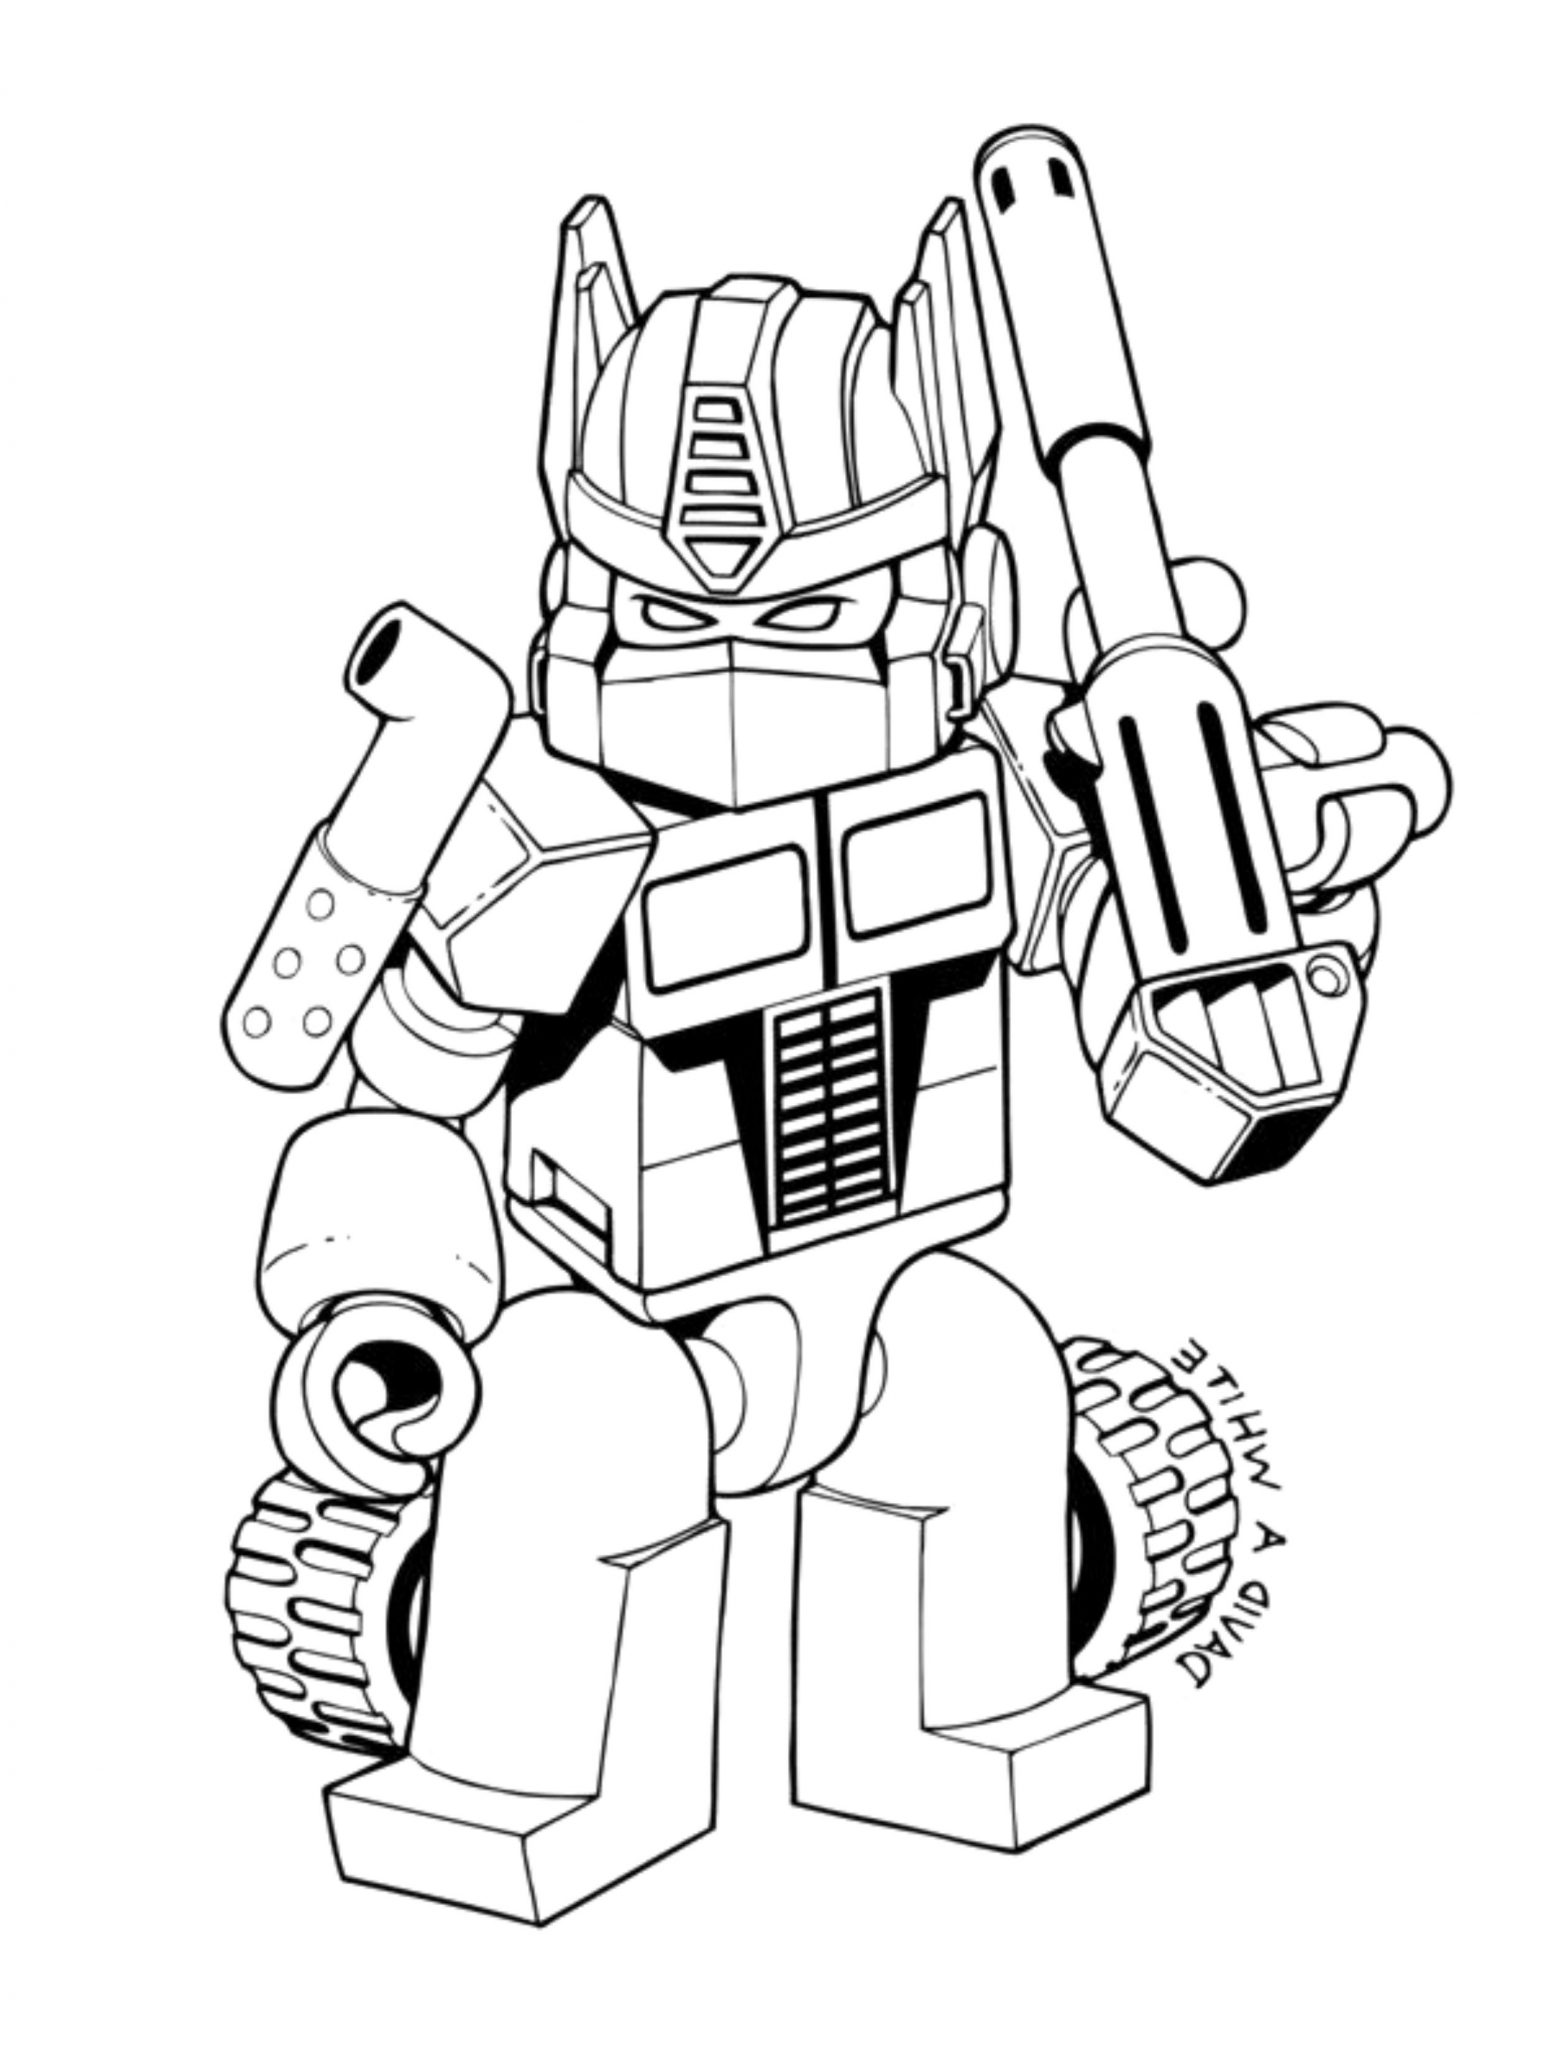 lego transformers coloring pages - Transformers Coloring Pages